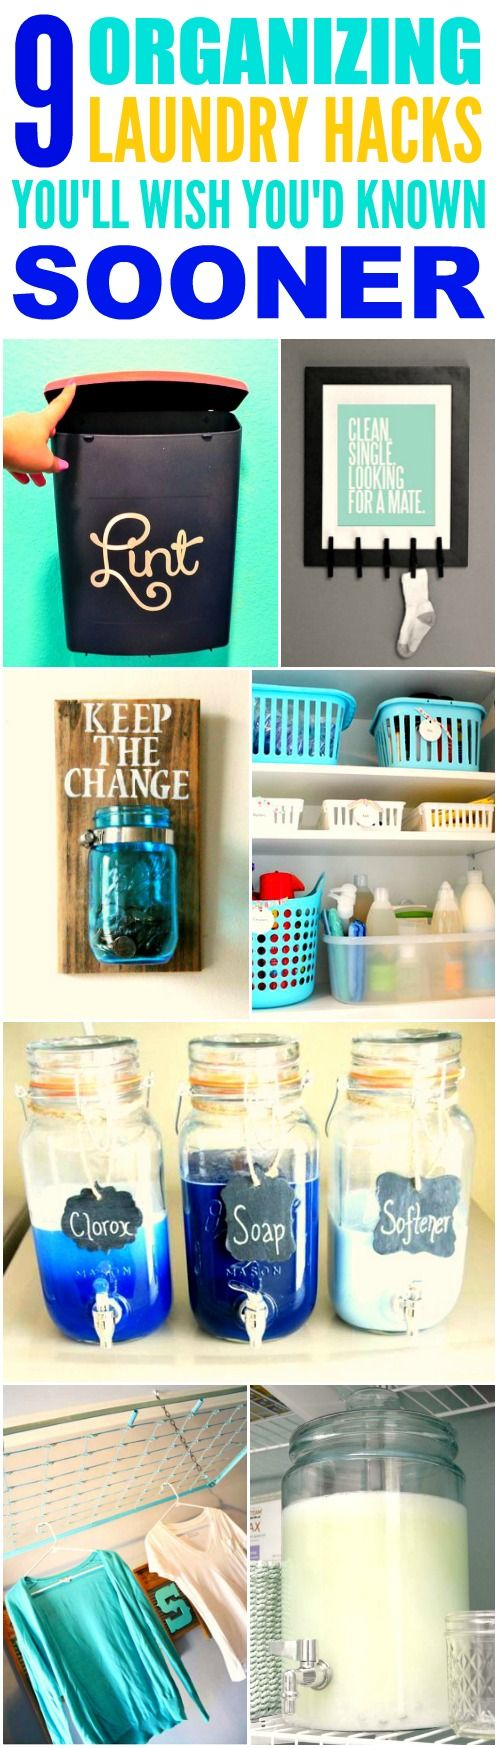 These 9 organizing laundry hacks are THE BEST! I'm so glad I found these AMAZING tip! Now I have some cute ways to organize my laundry room Definitely pinning for later!